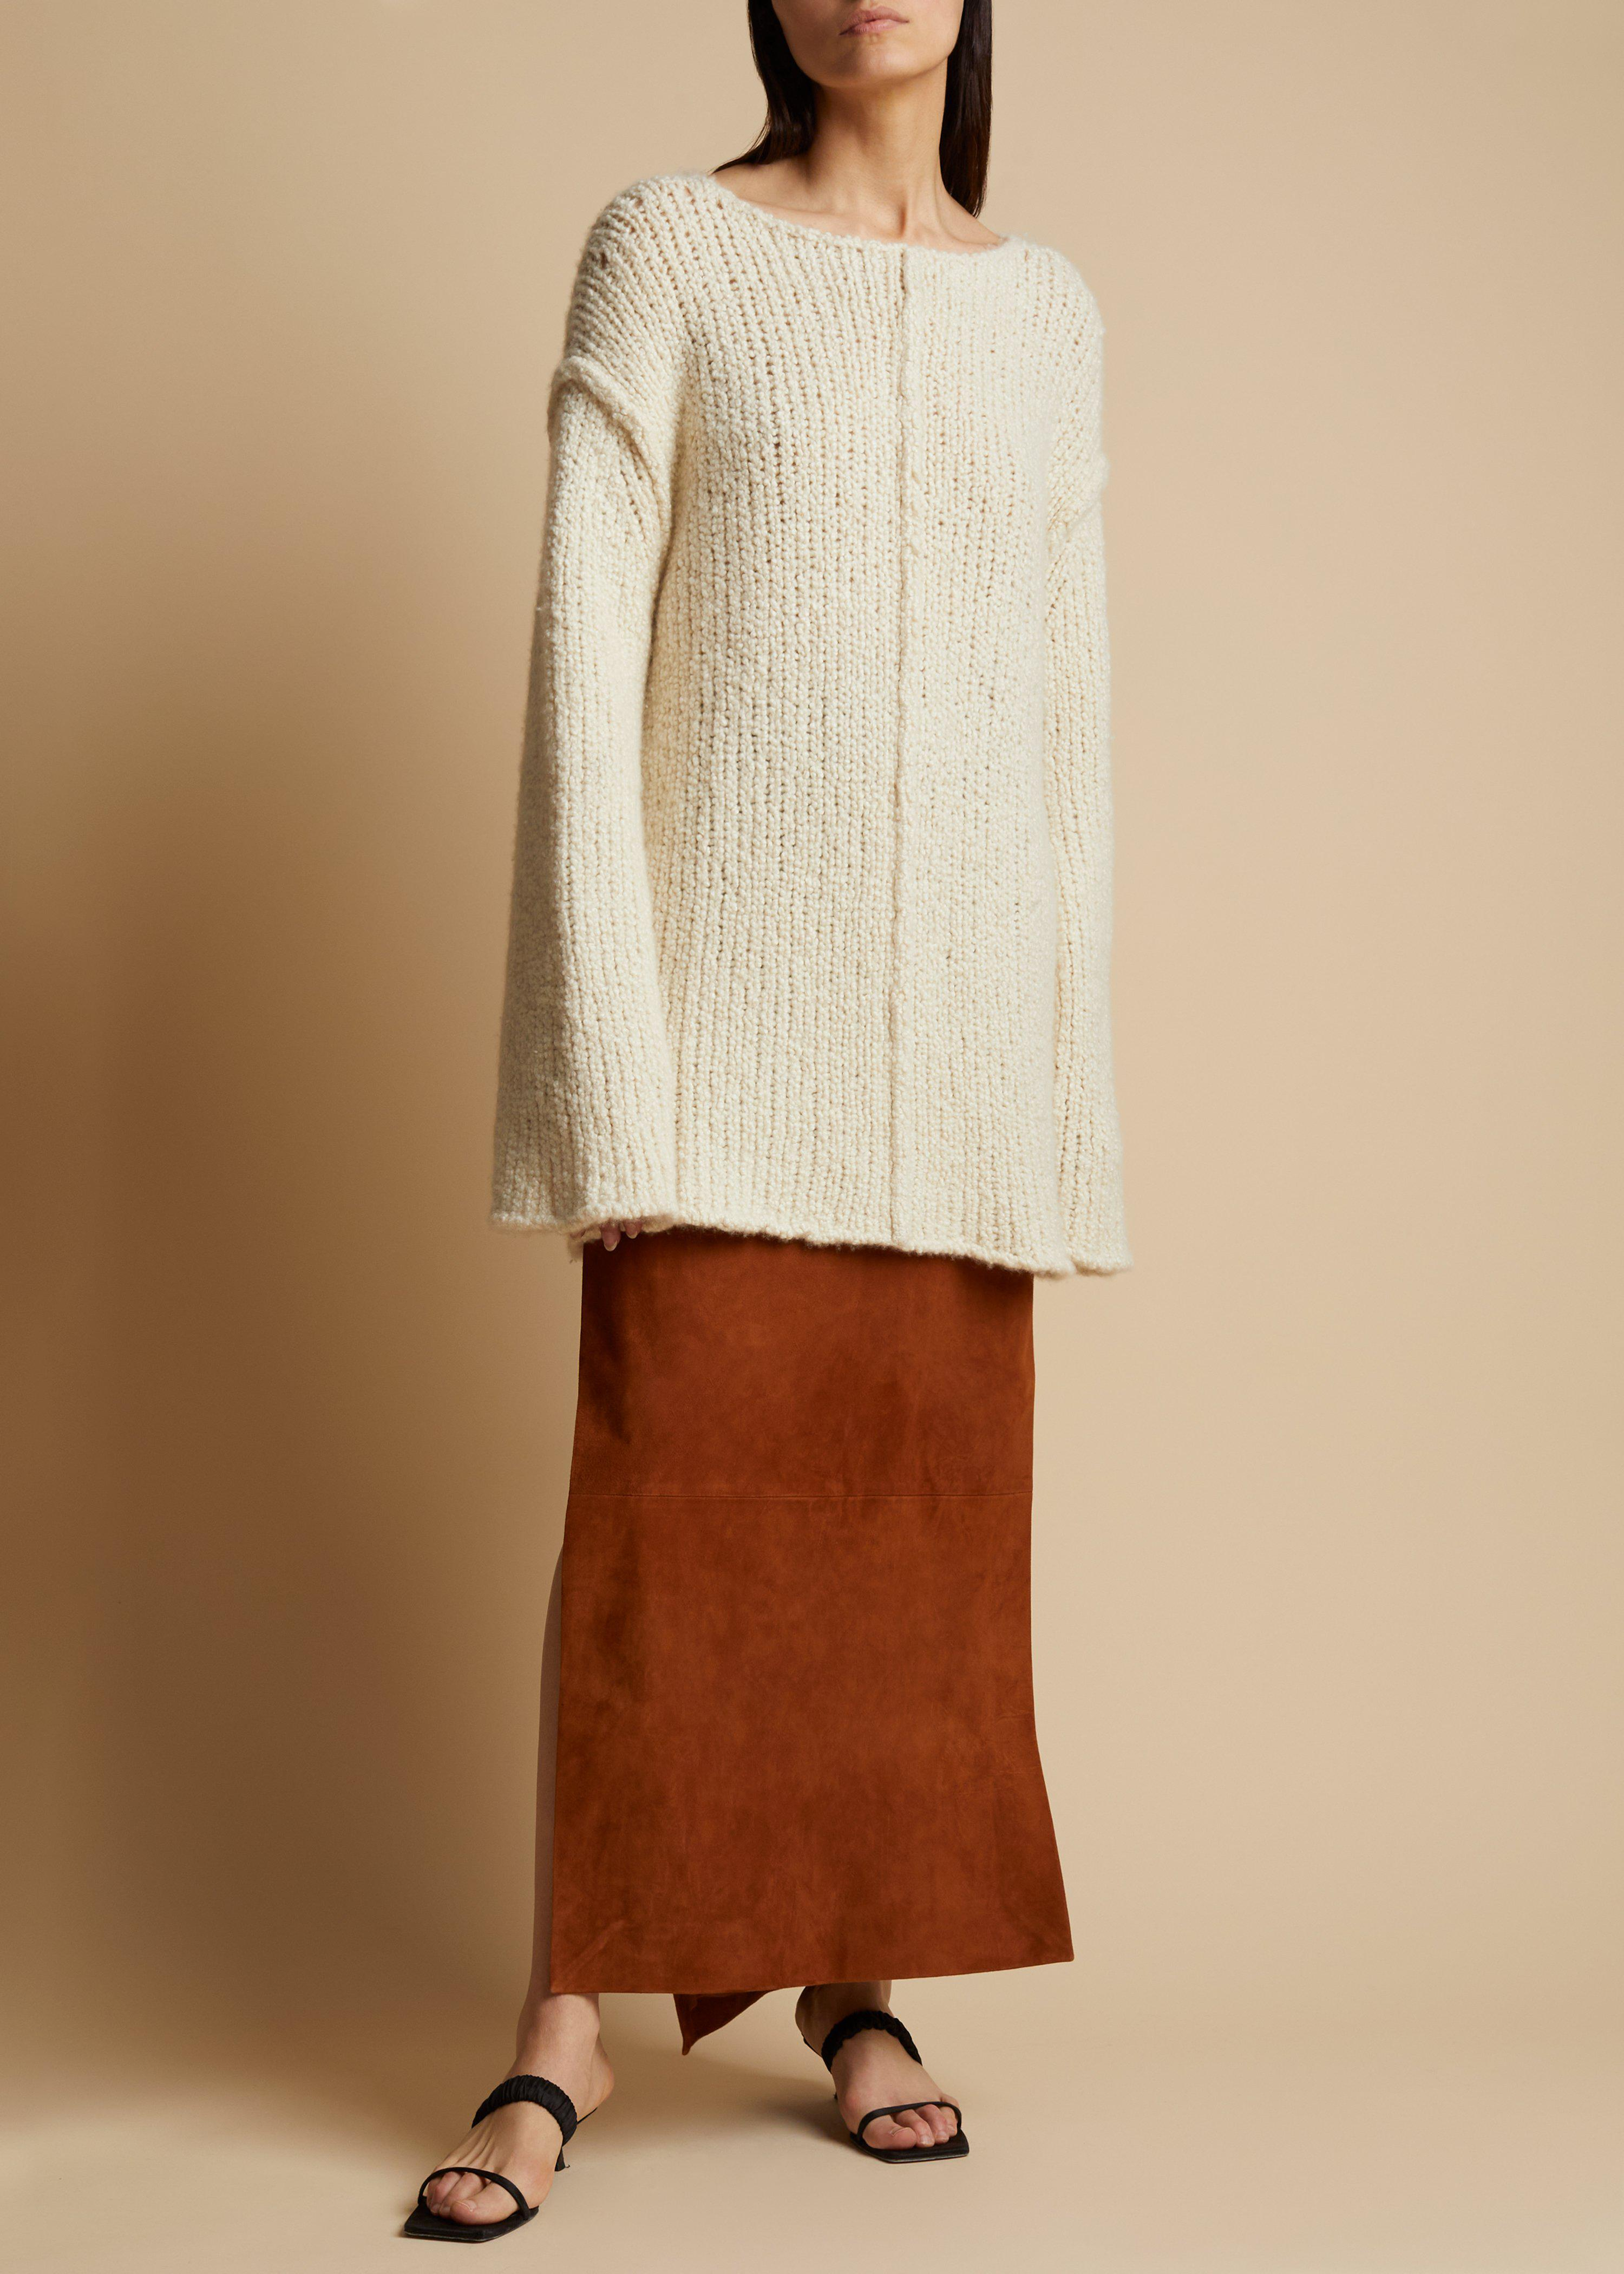 The Myla Skirt in Chestnut Suede